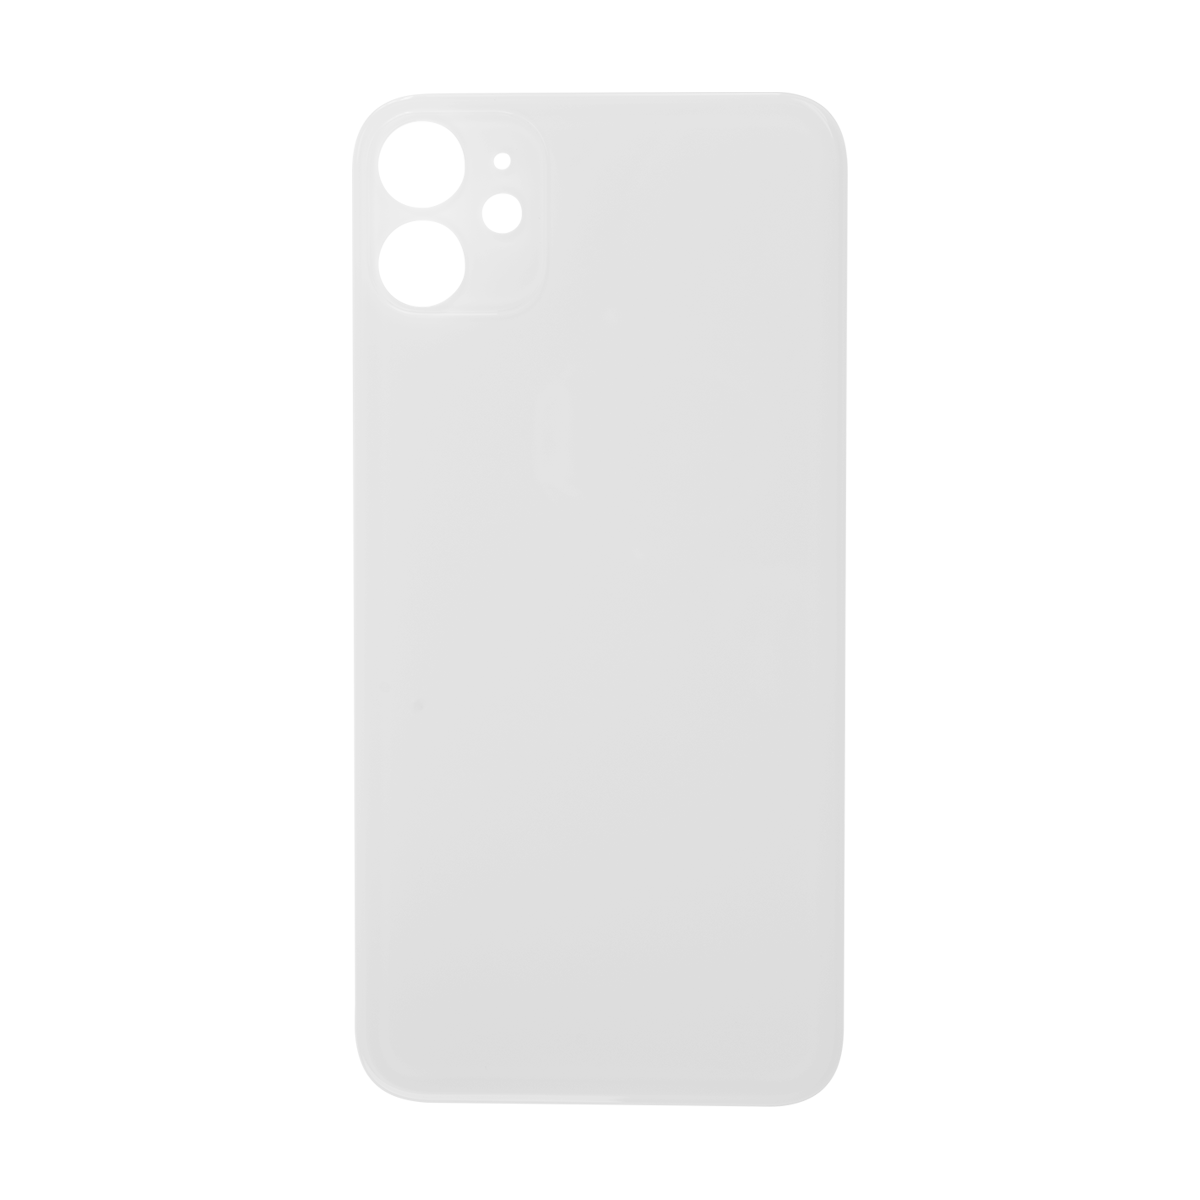 iPhone_11_Back_glass_with_big_hole_white_SBAEDLPIL9GT.png